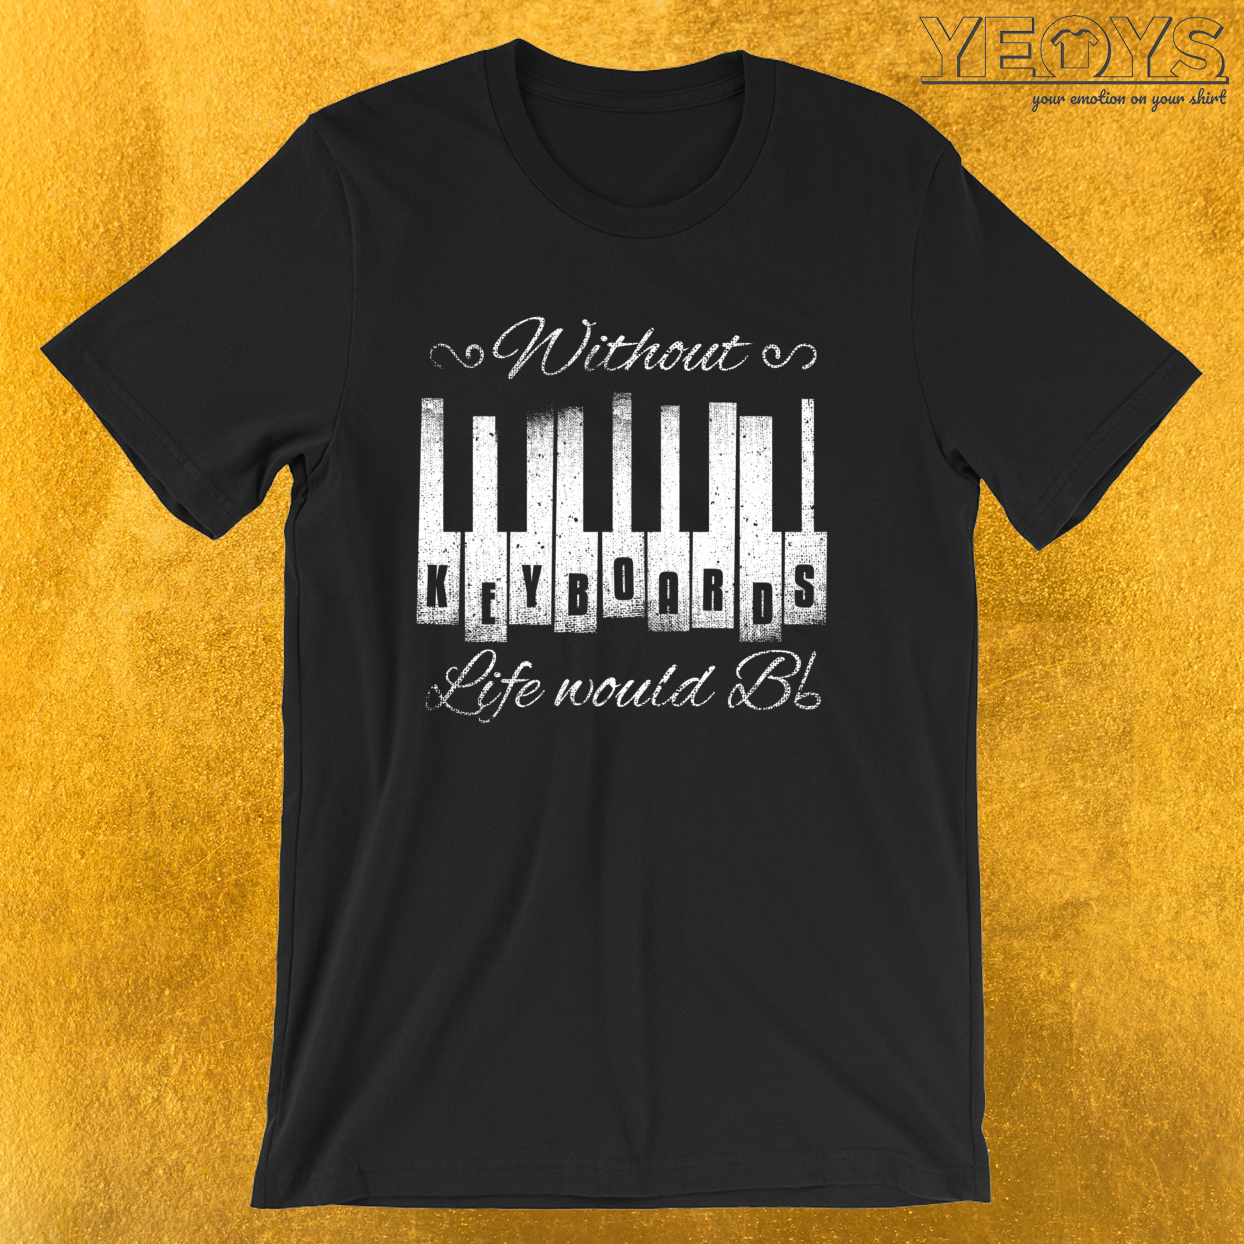 Without Keyboards Life Would B Flat – Funny Music Quotes Tee